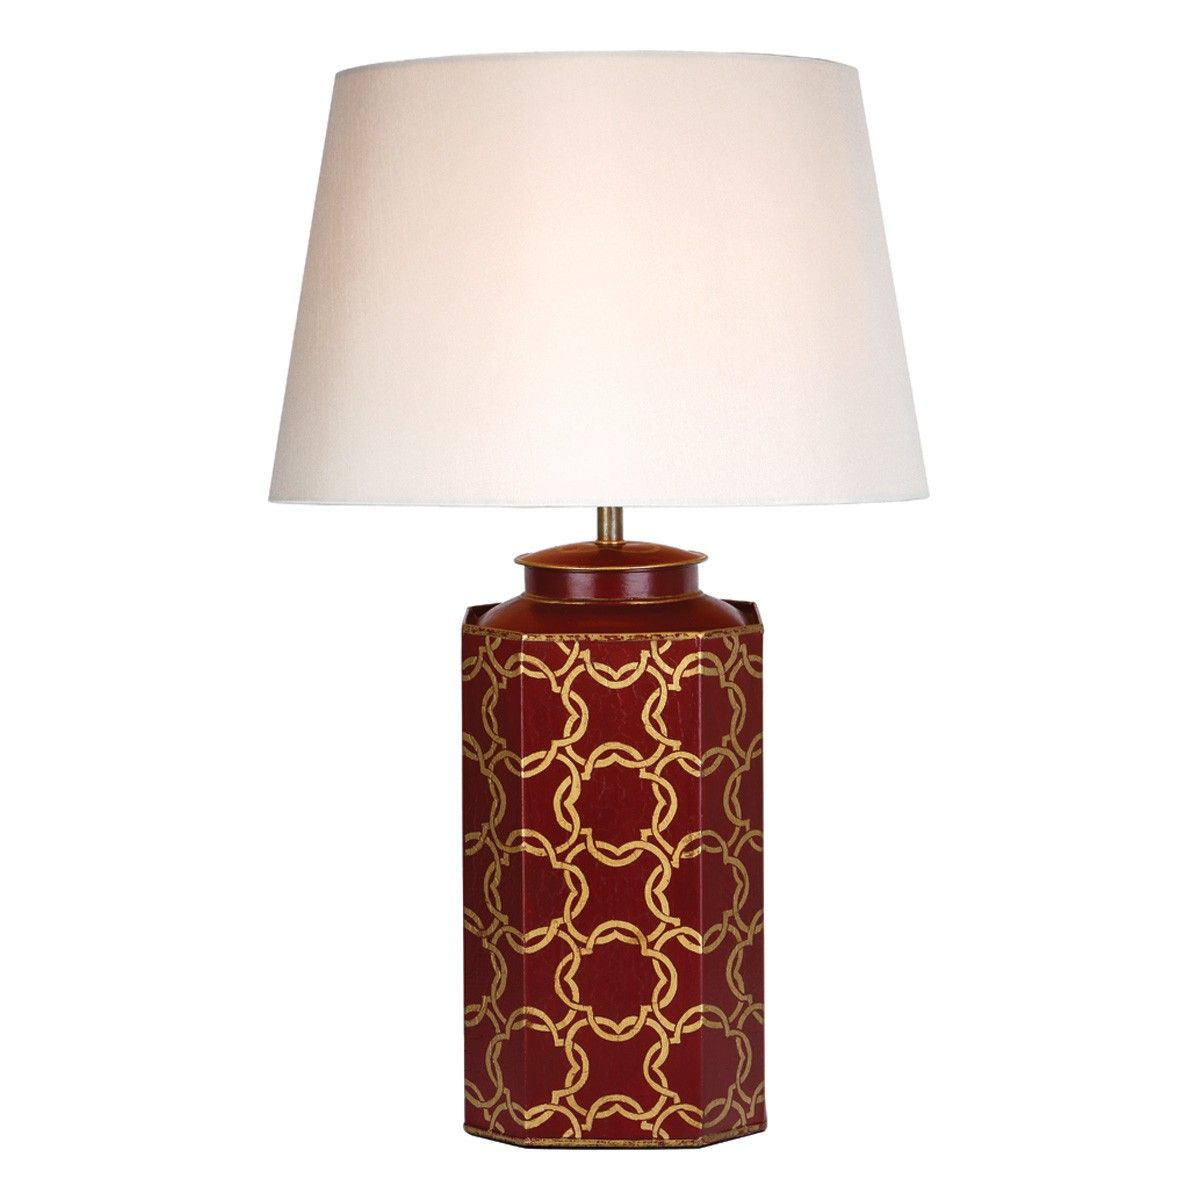 Hiram Table Lamp Red Gold Base Only The Hiram Table Lamp Has A Tea